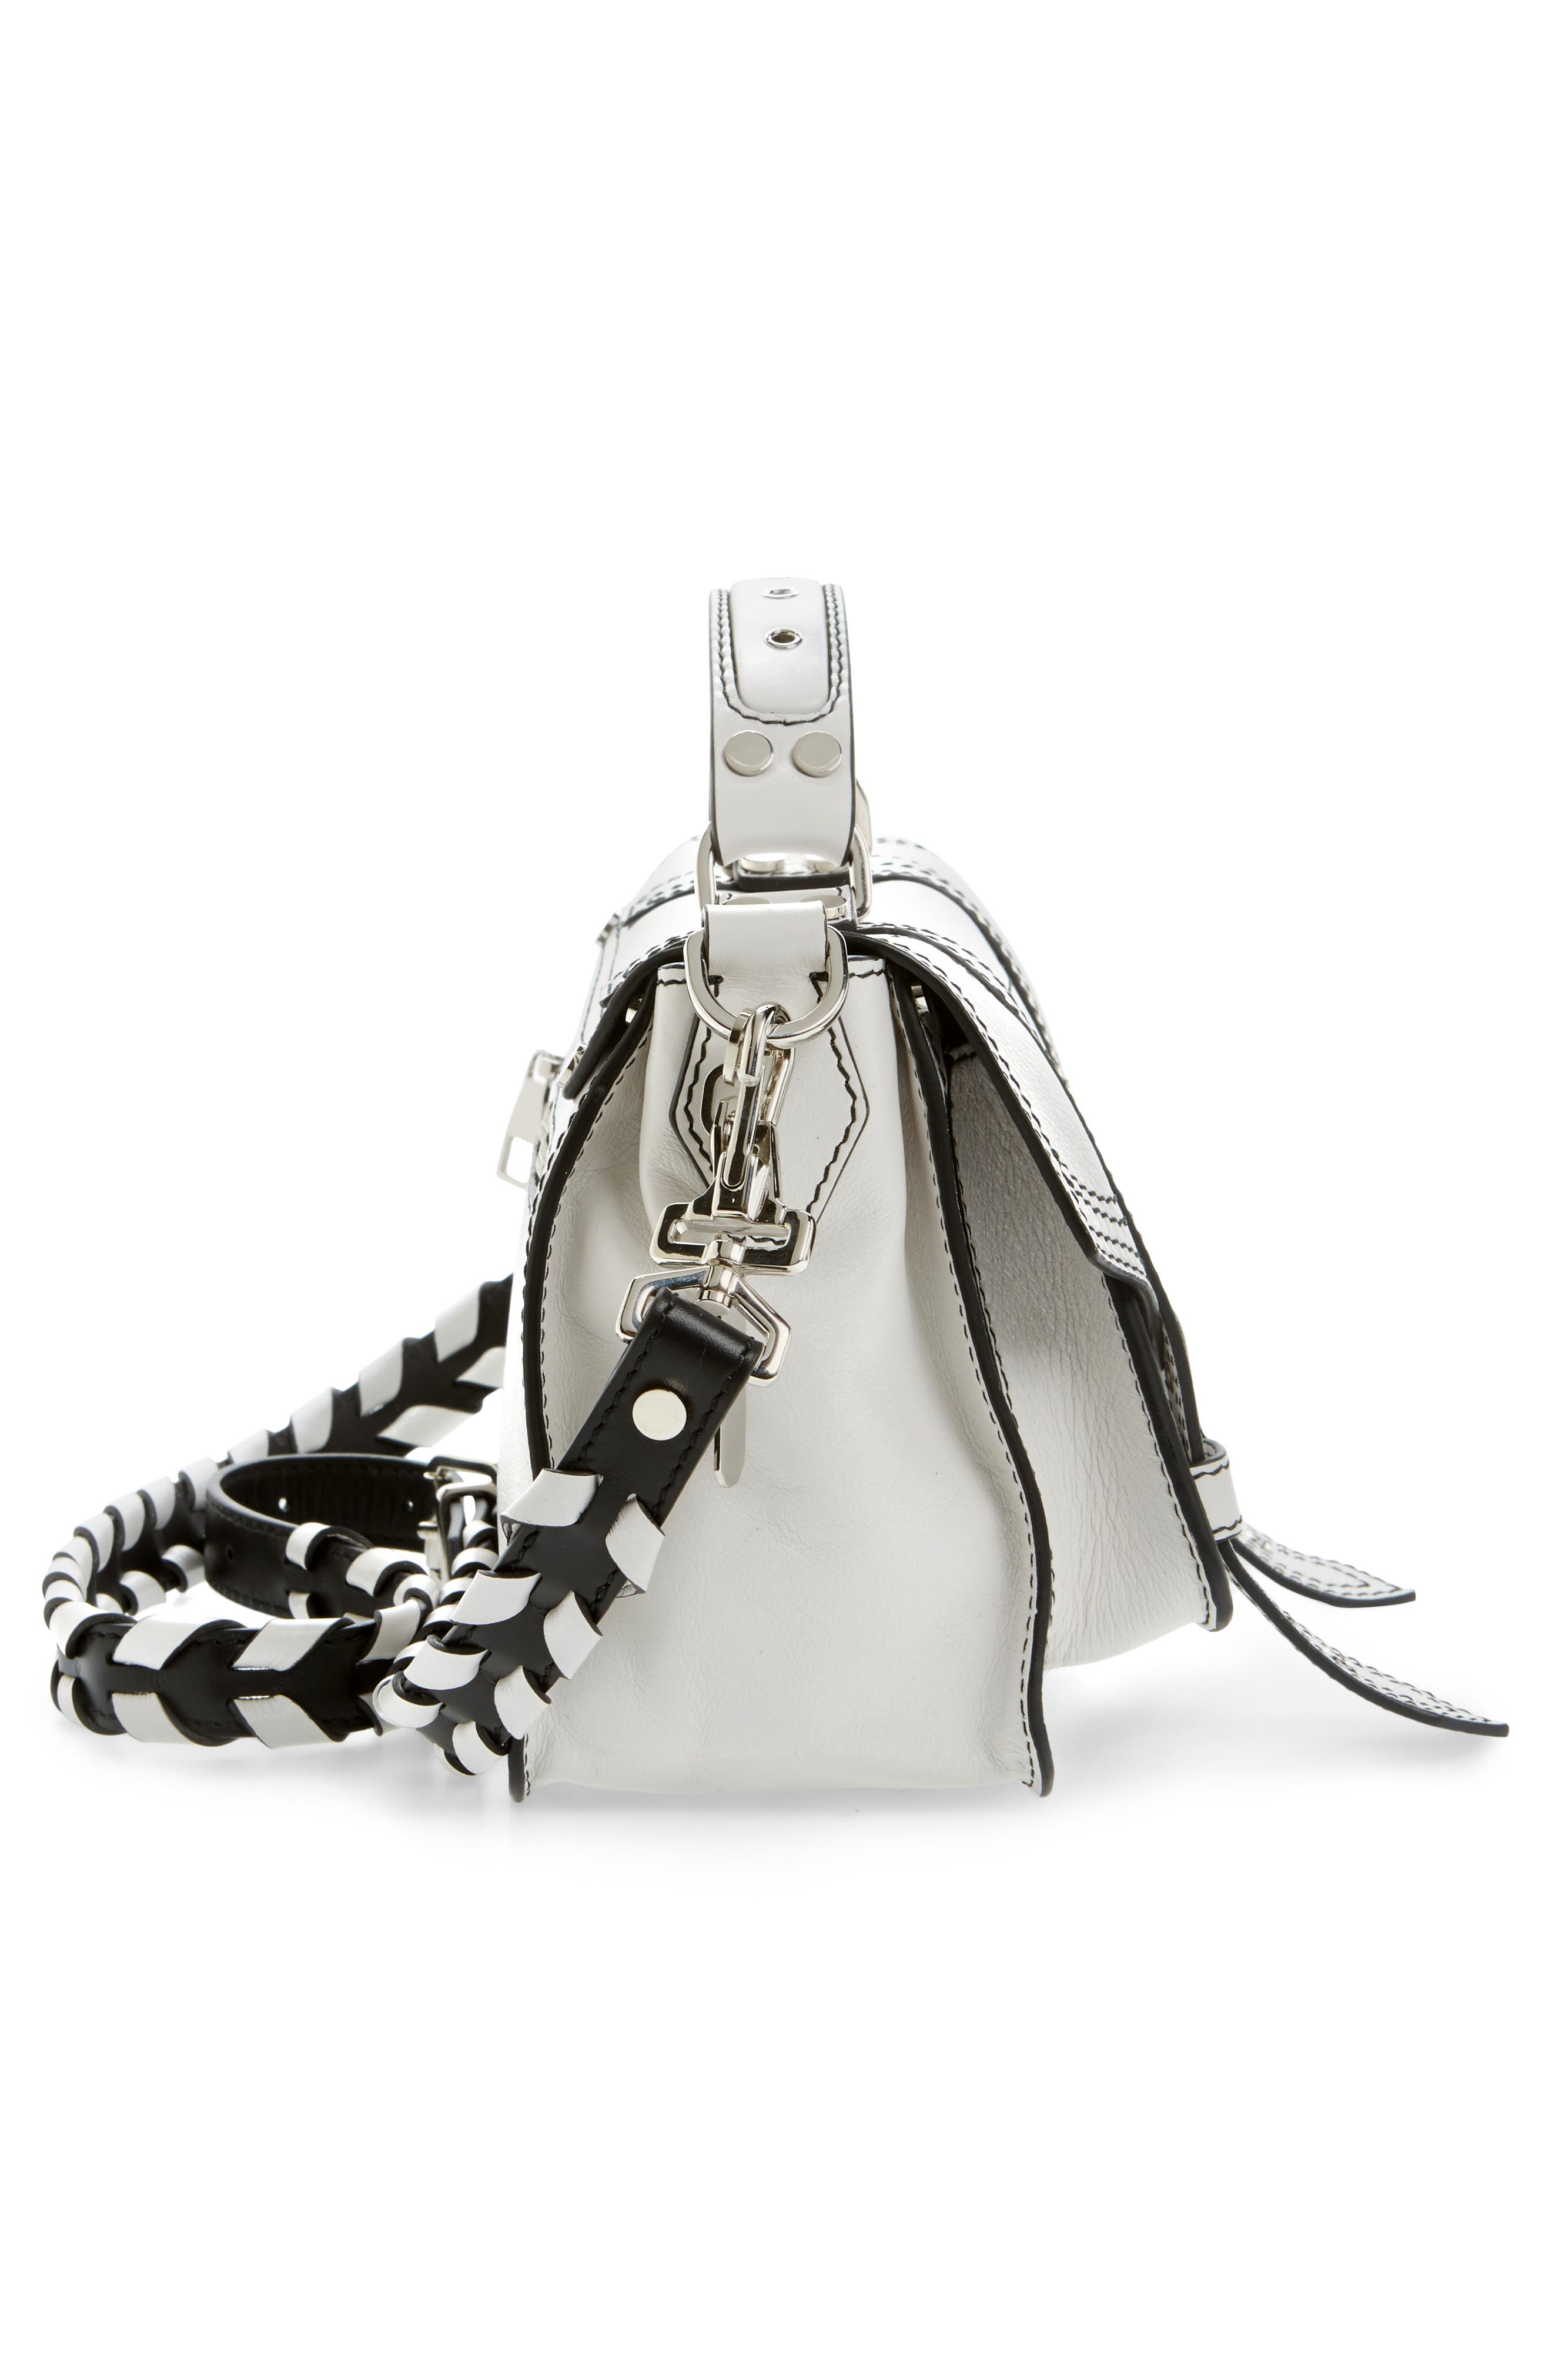 Tiny PS1 Calfskin Leather Satchel with Novelty Shoulder/Crossbody Strap,                             Alternate thumbnail 5, color,                             Optic White